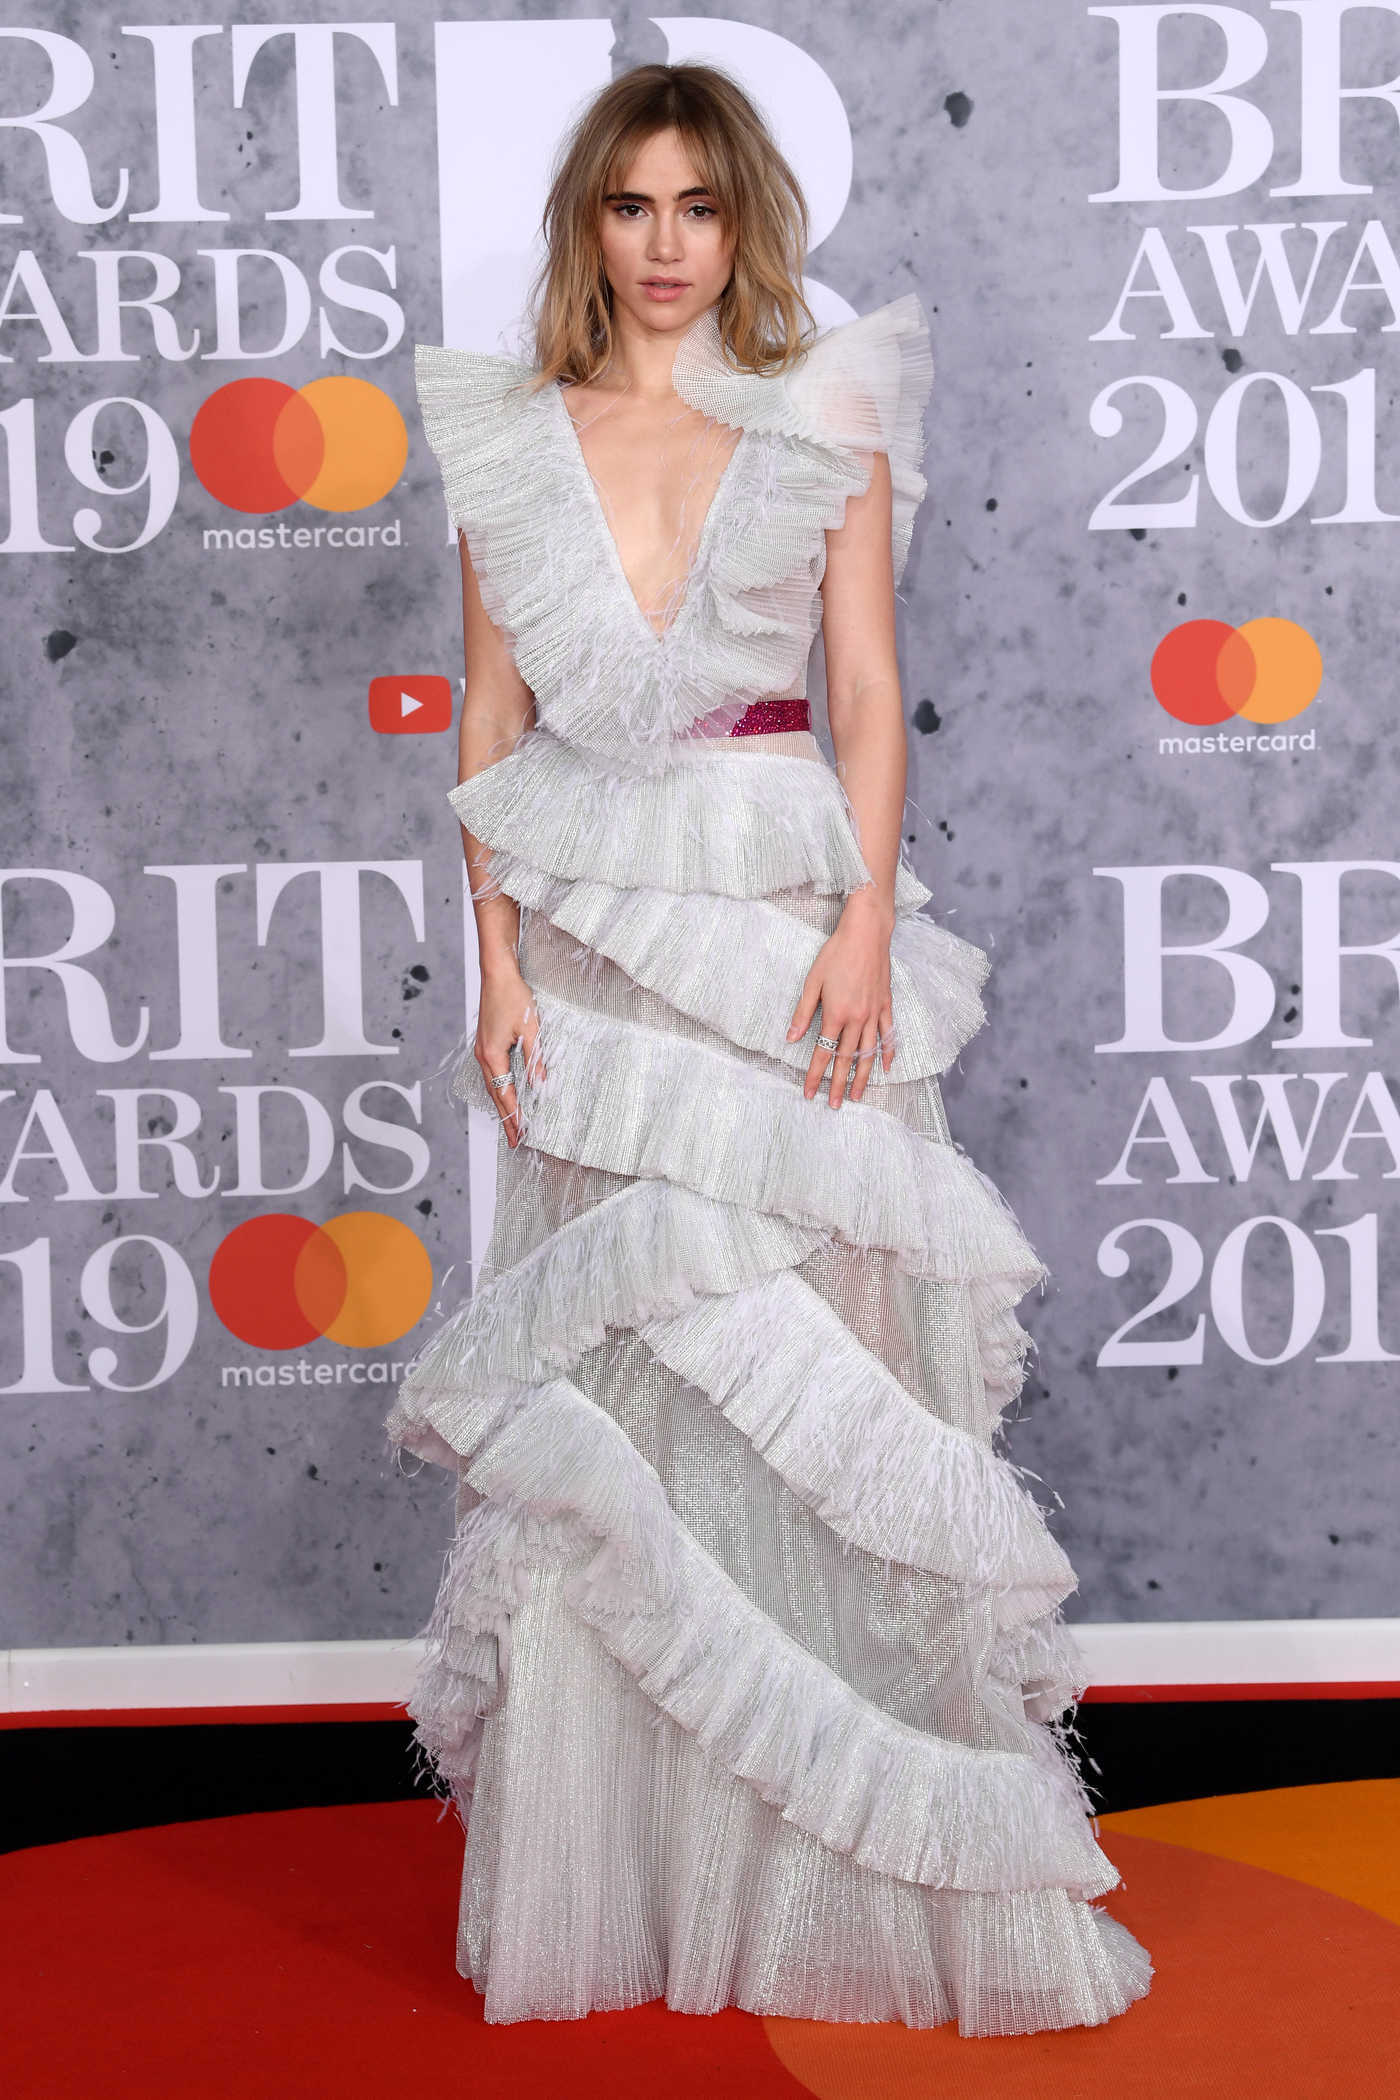 Suki Waterhouse Attends the 39th Brit Awards at the O2 Arena in London 02/20/2019